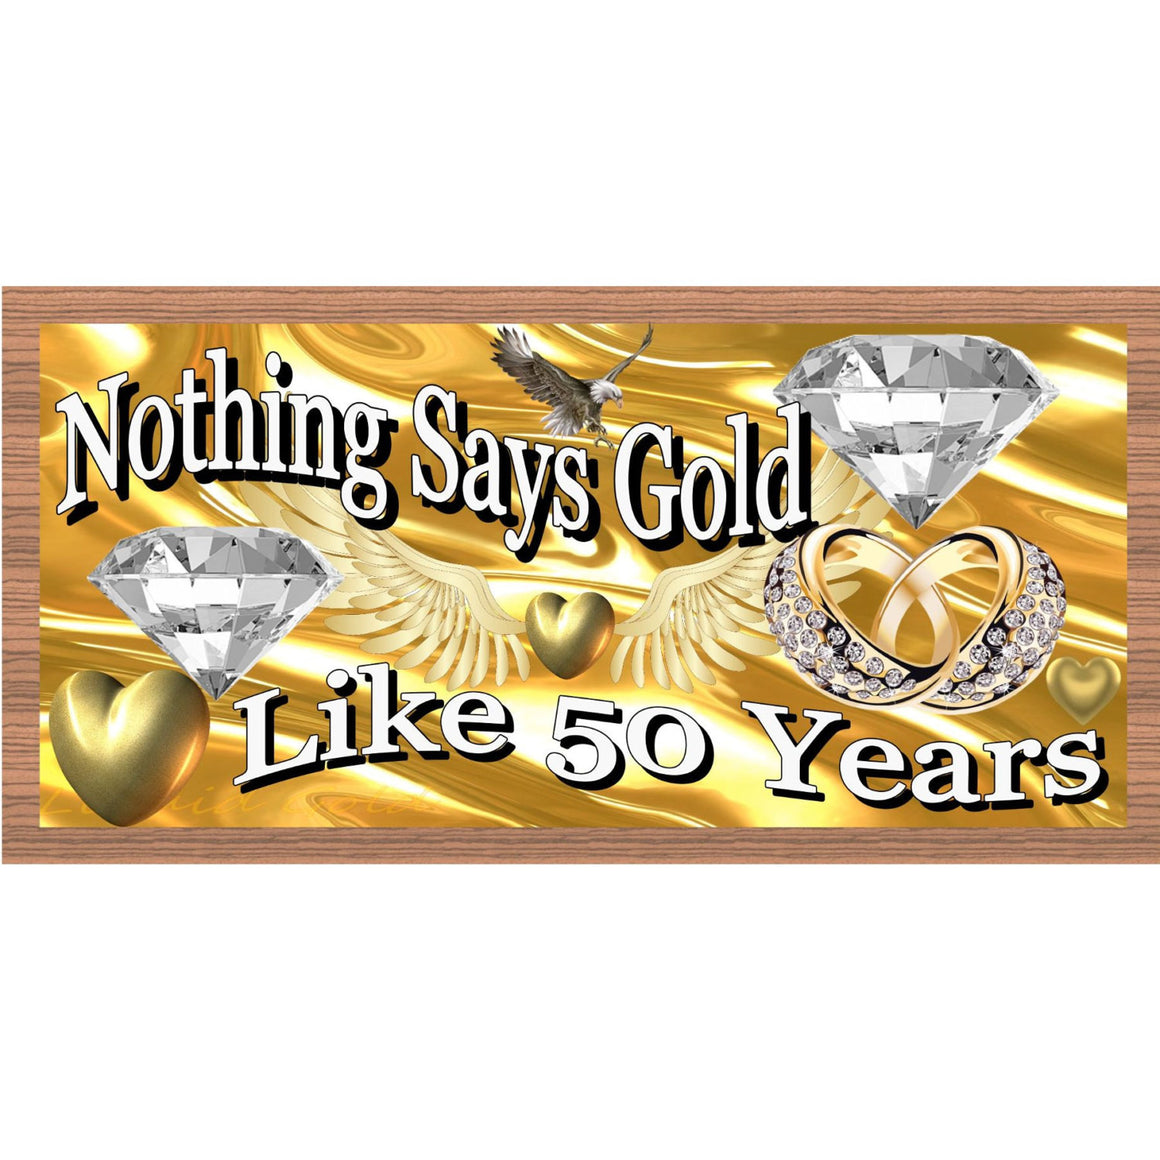 Anniversary Wood Signs -Nothing Says Gold Like 50 Years GS1801 -Anniversary Plaque